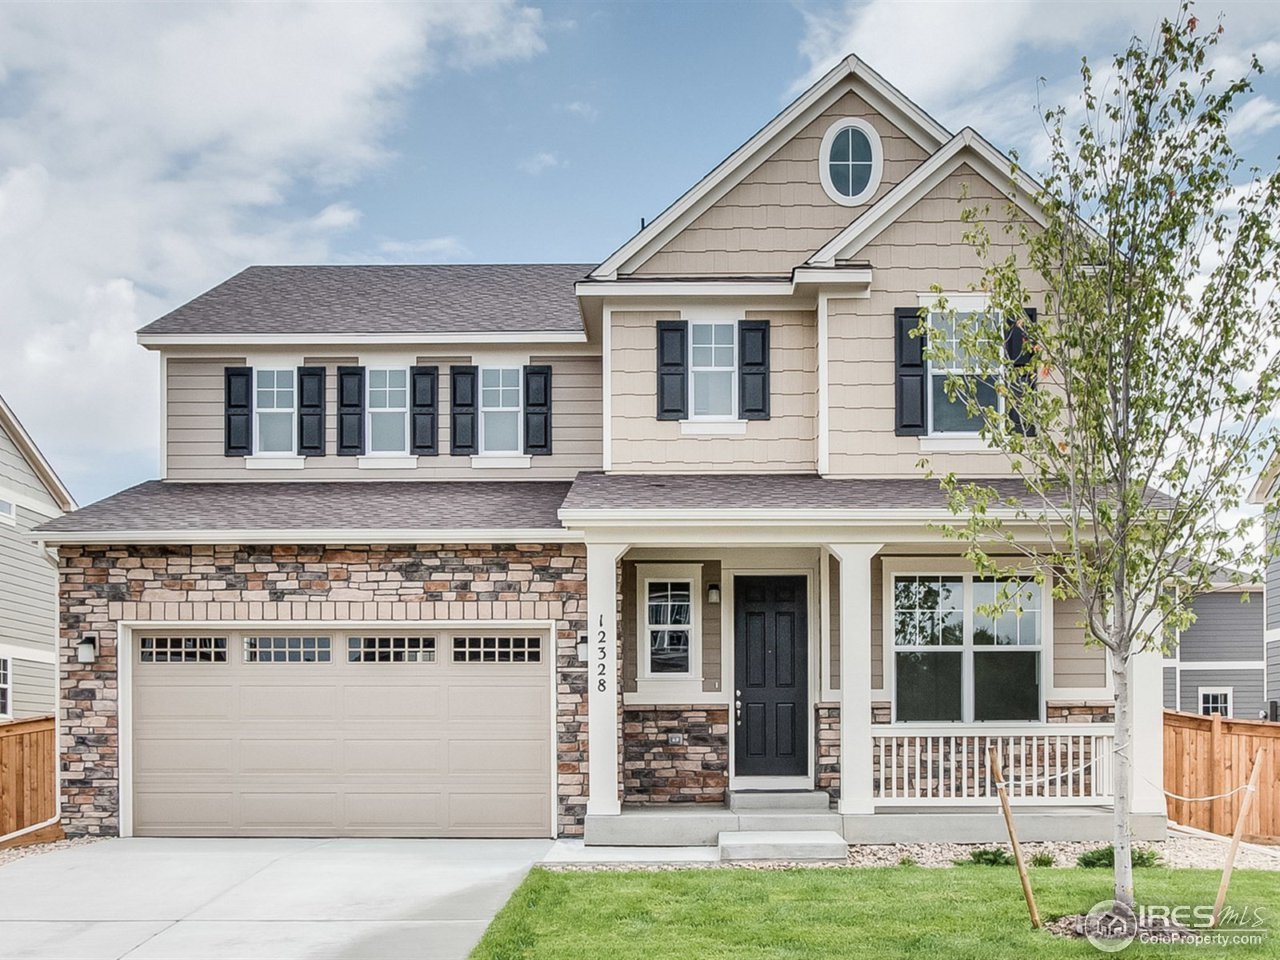 12328 Oneida St, Thornton, CO 80602